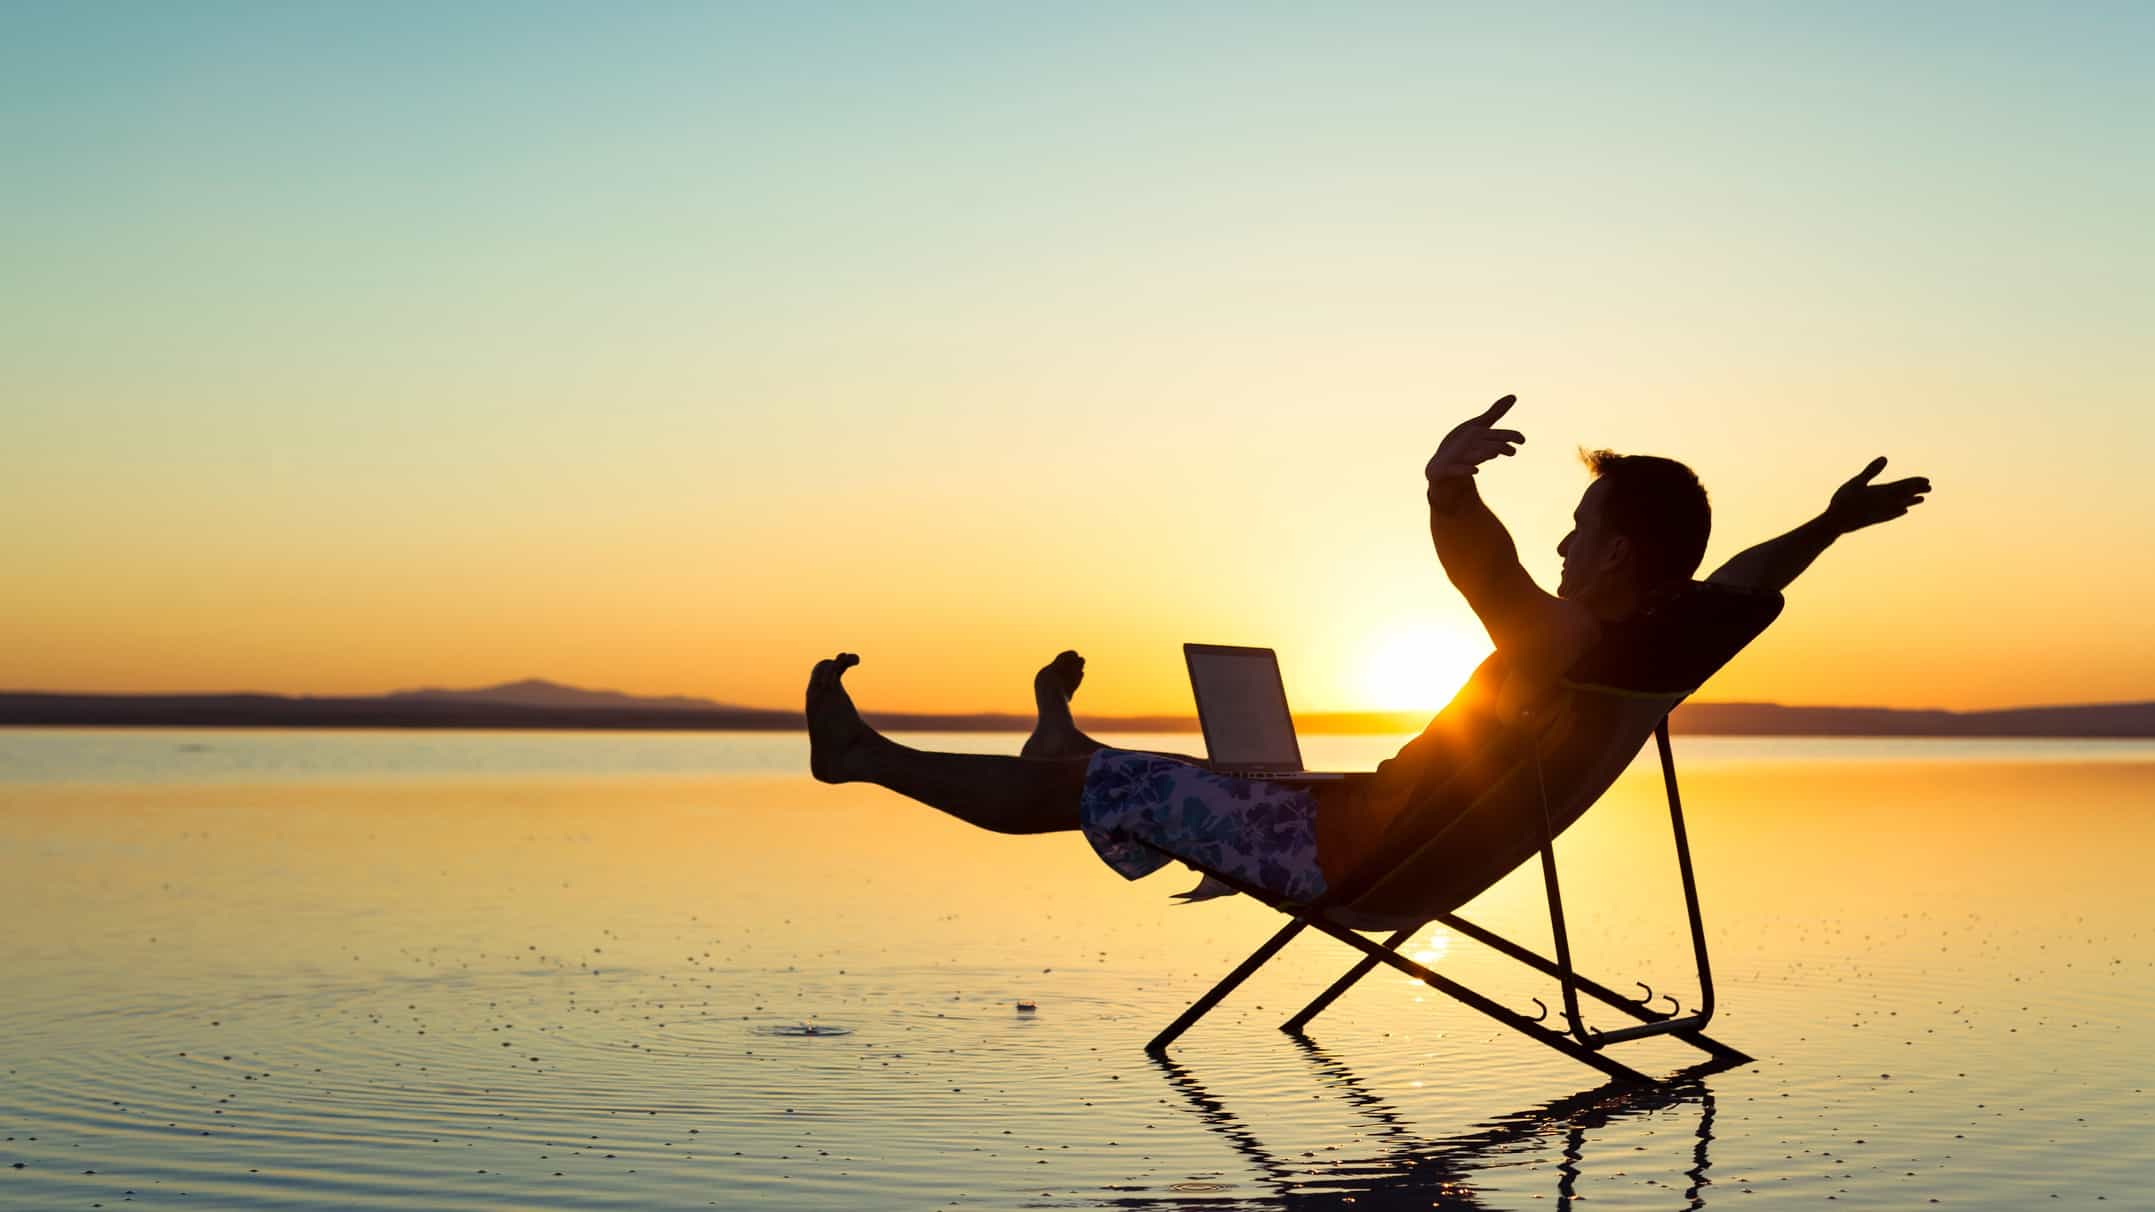 Man in deck chair on a beach at sunset with laptop and arms outstretched